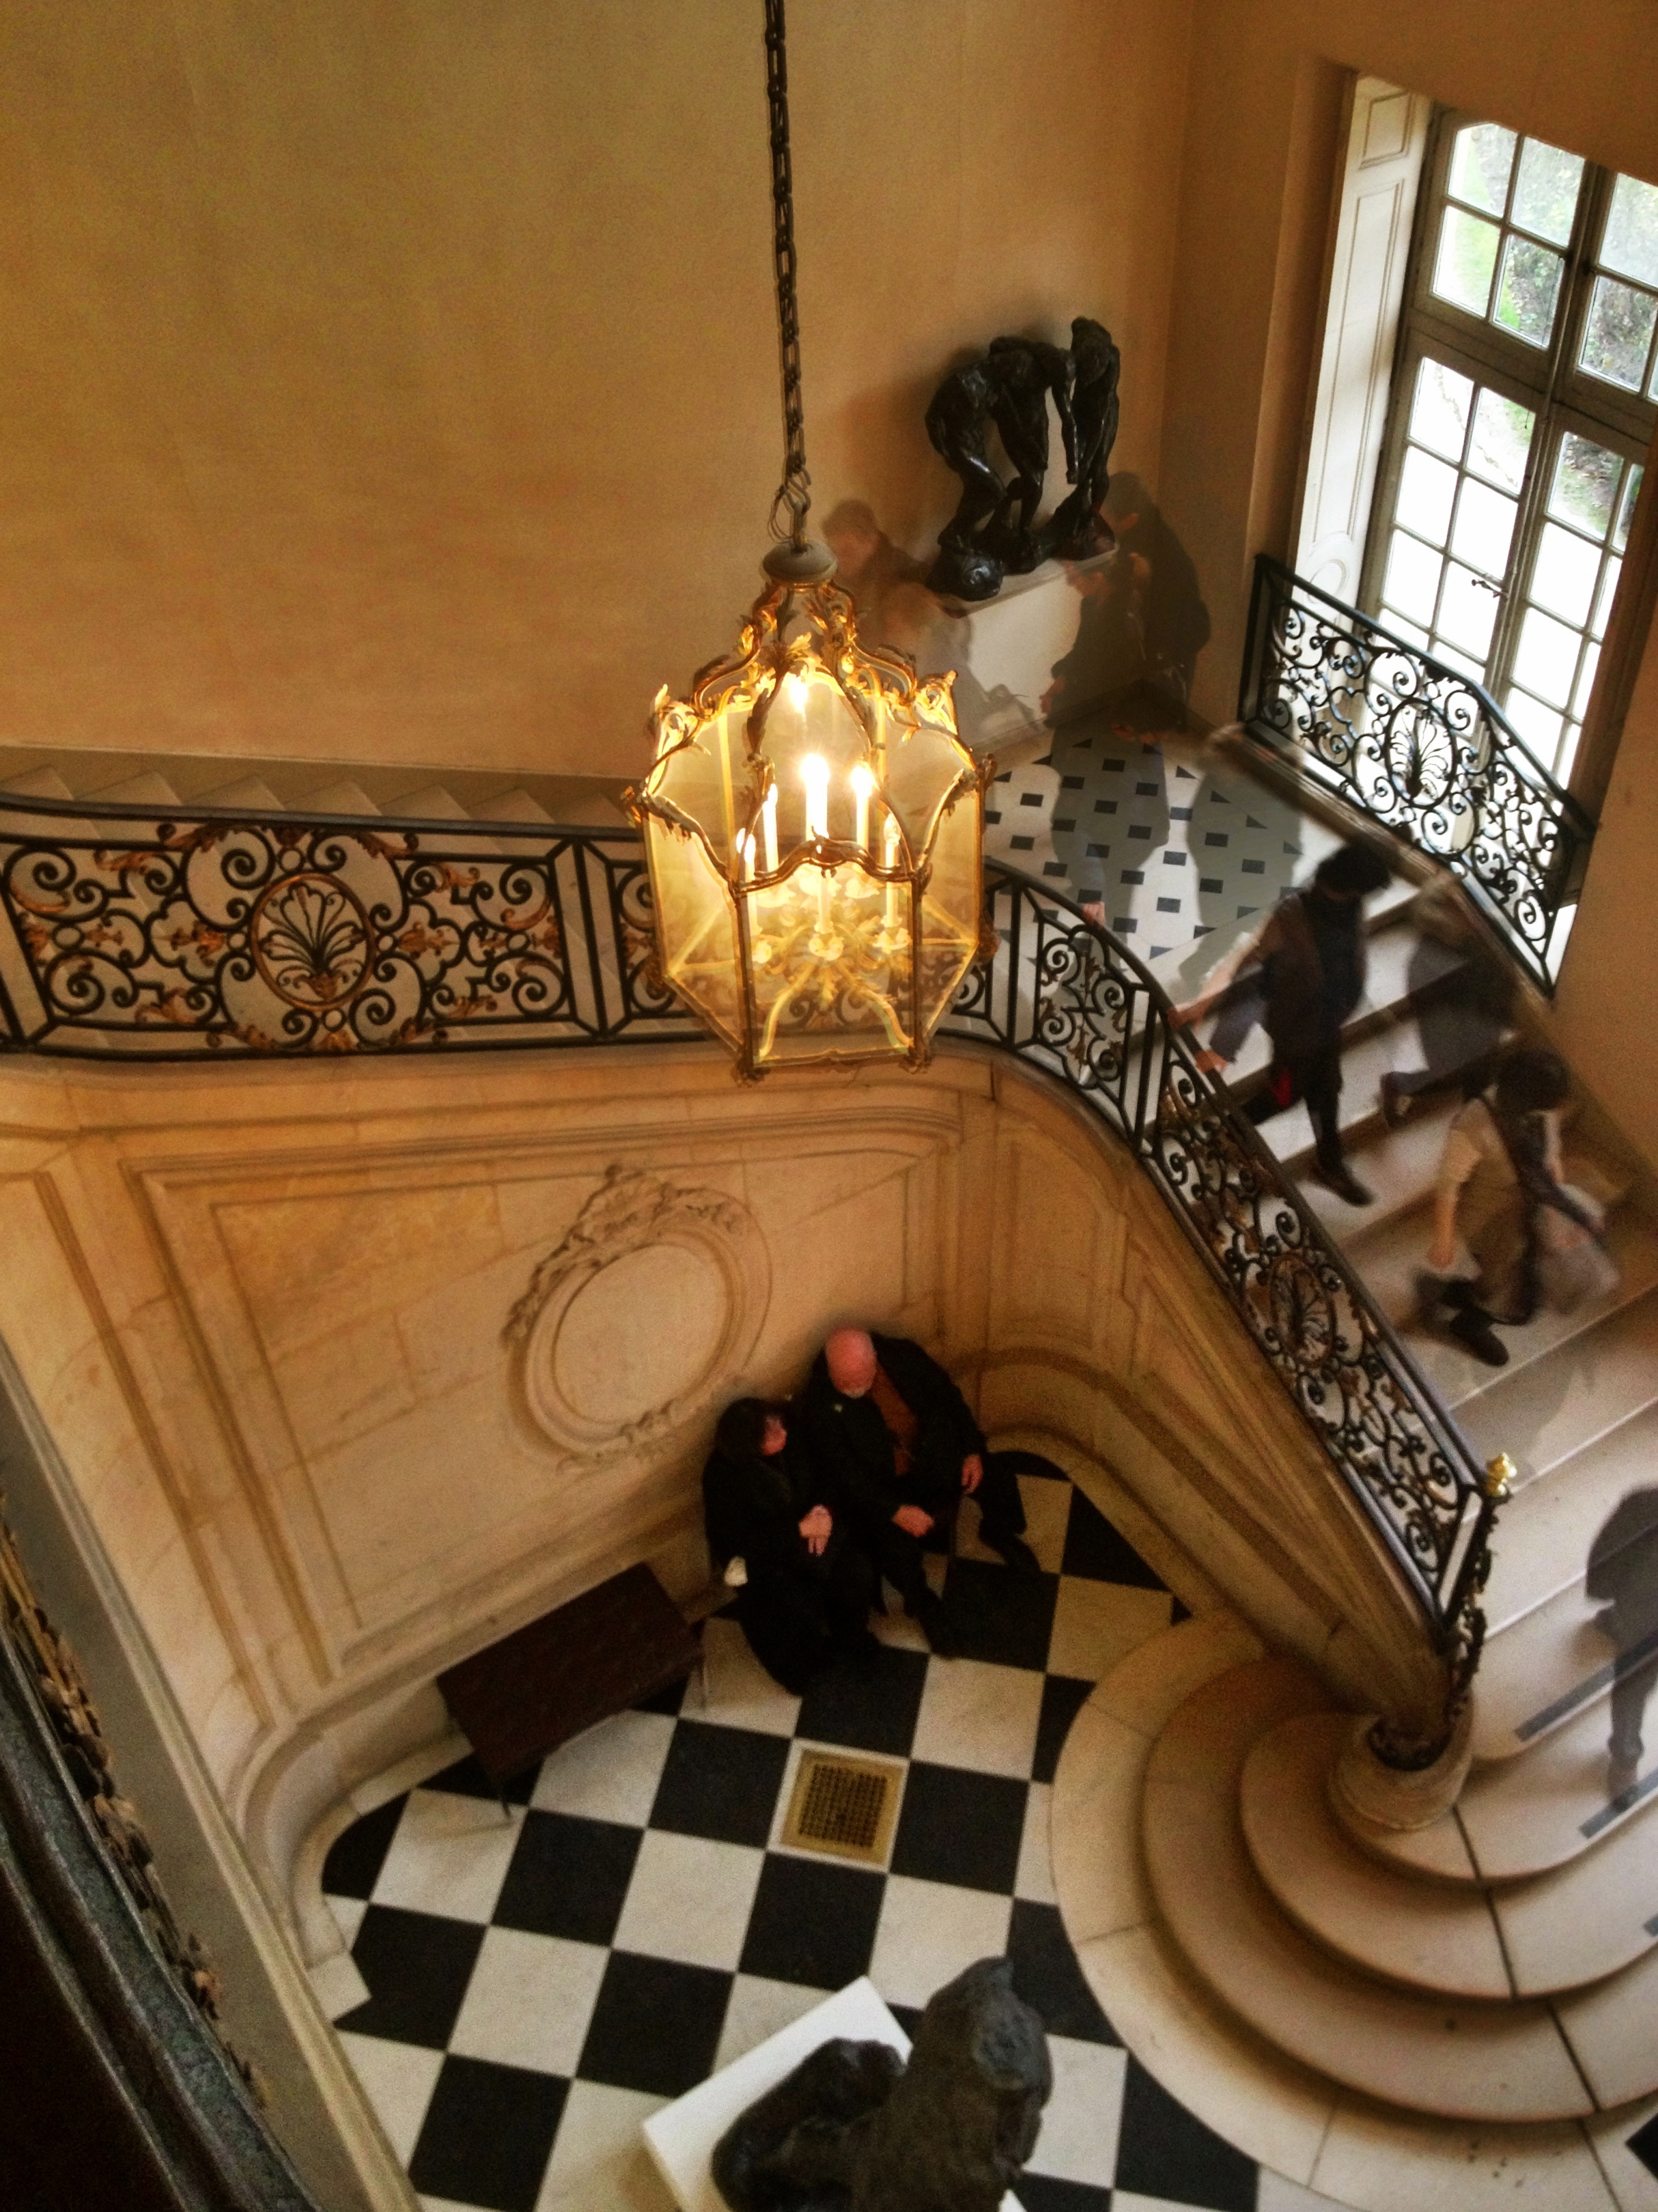 Musee Rodin, Staircase: Couple sitting as time passes